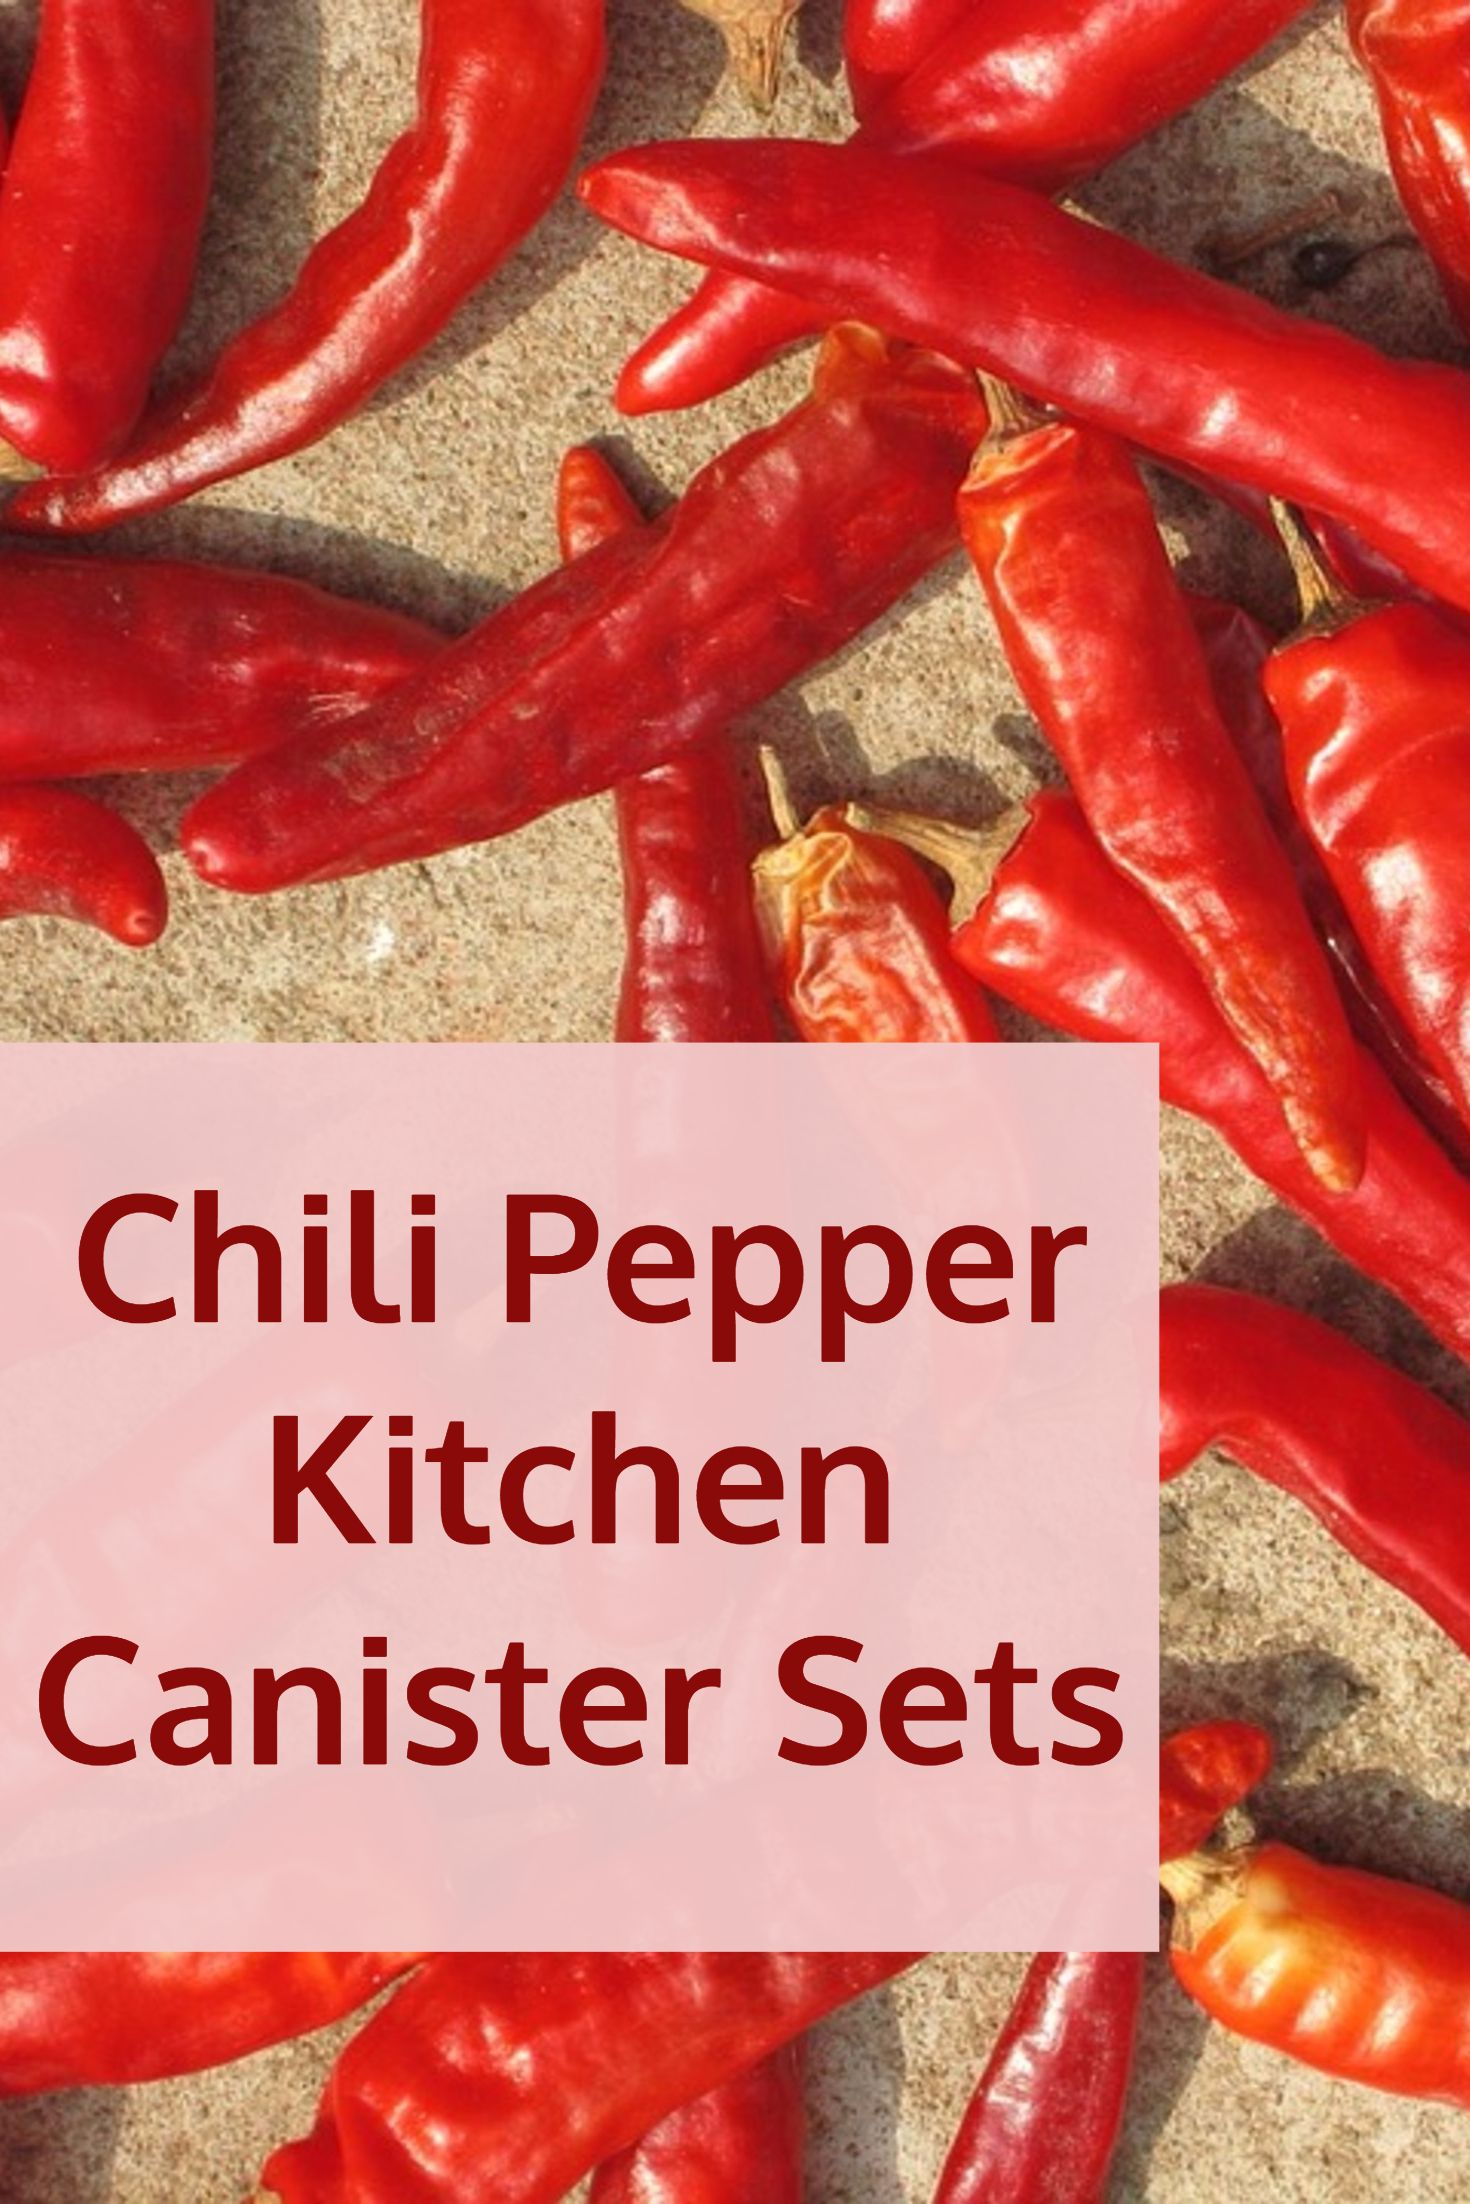 Chili Pepper Kitchen Canister Sets Kims Home And Garden